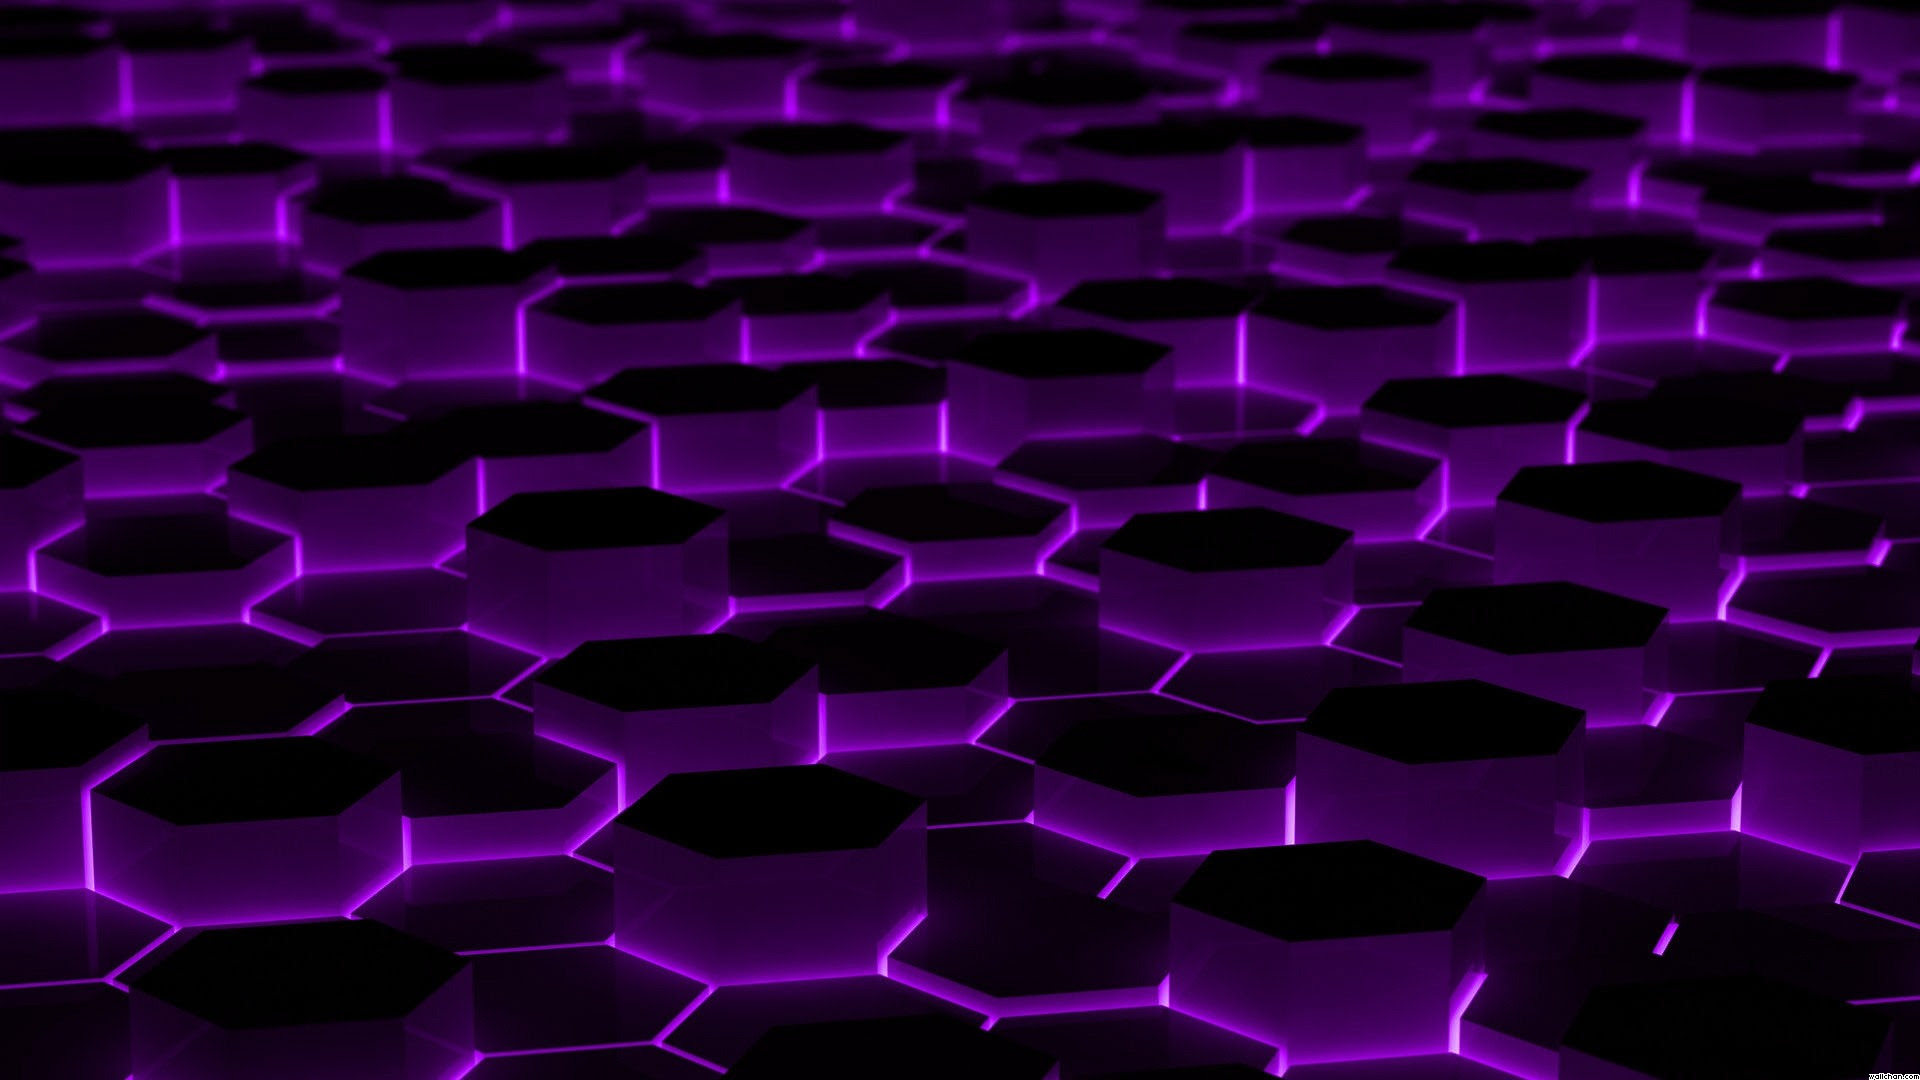 Black And Purple Backgrounds 59 Images